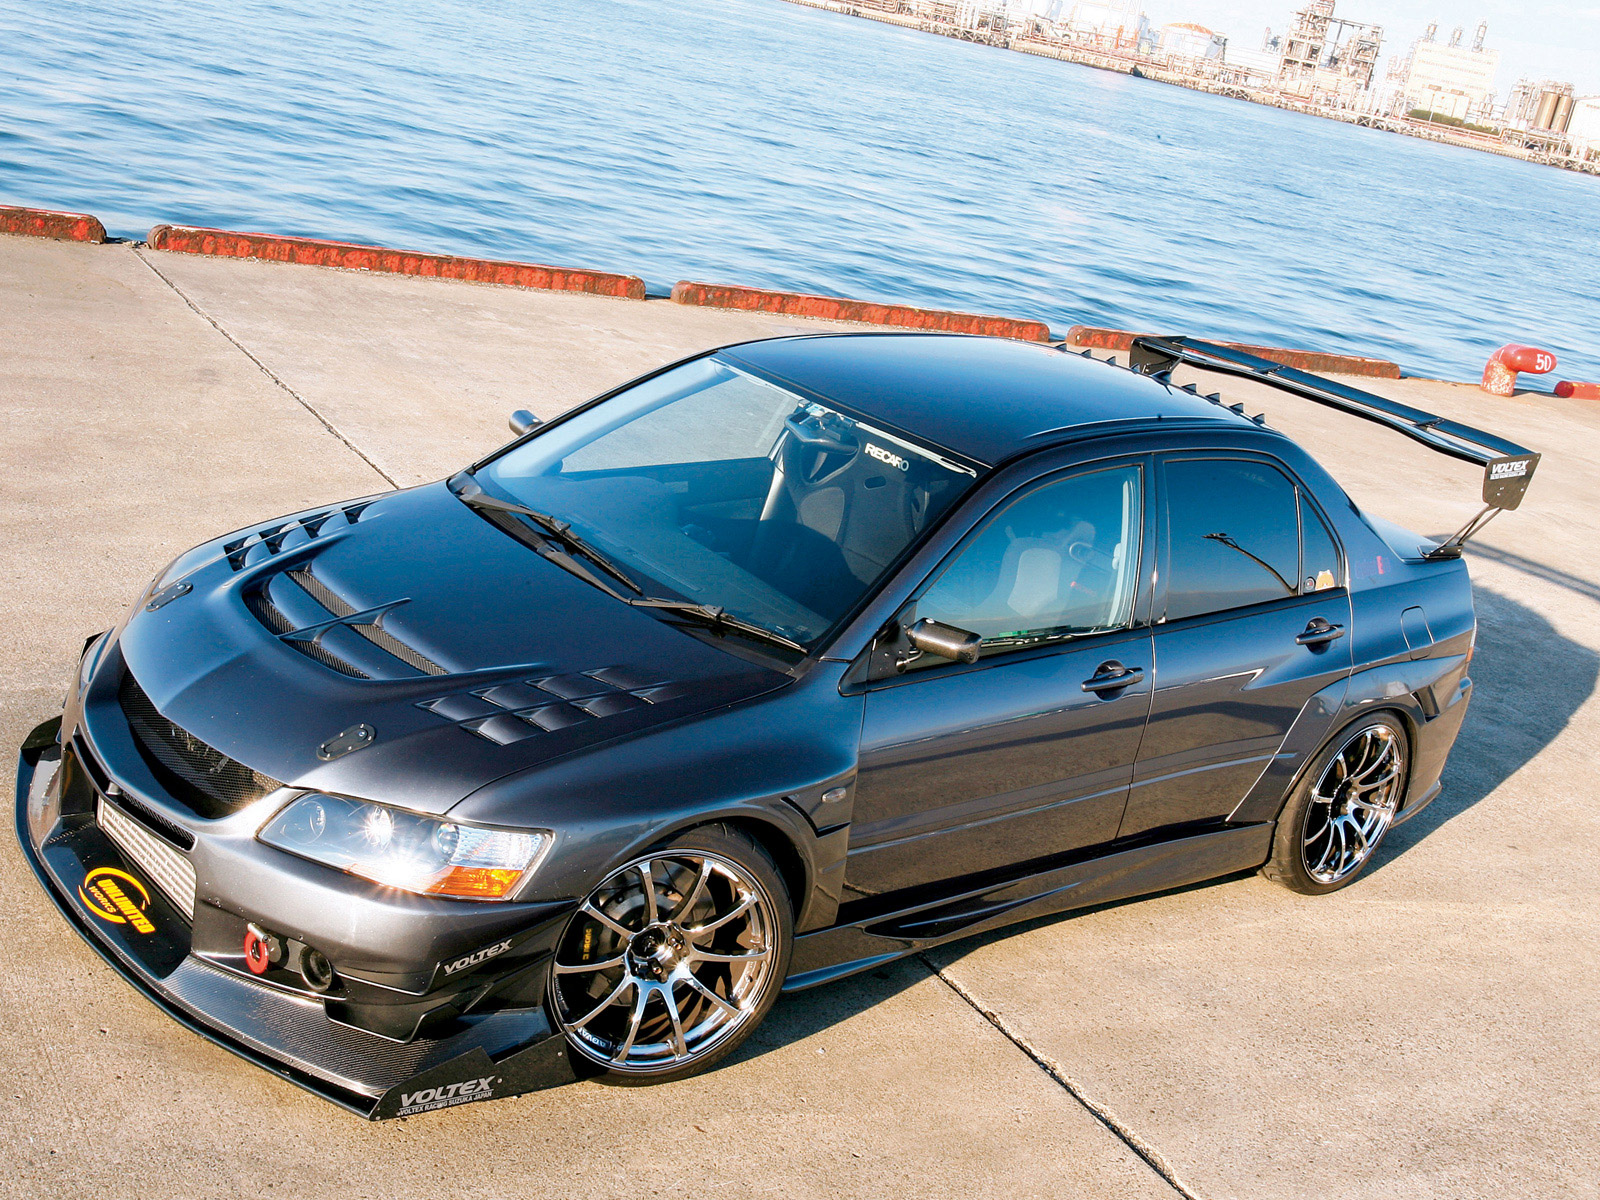 mitsubishi lancer evolution viii 2 0 i 16v turbo 265 hp evo technical specifications and fuel. Black Bedroom Furniture Sets. Home Design Ideas